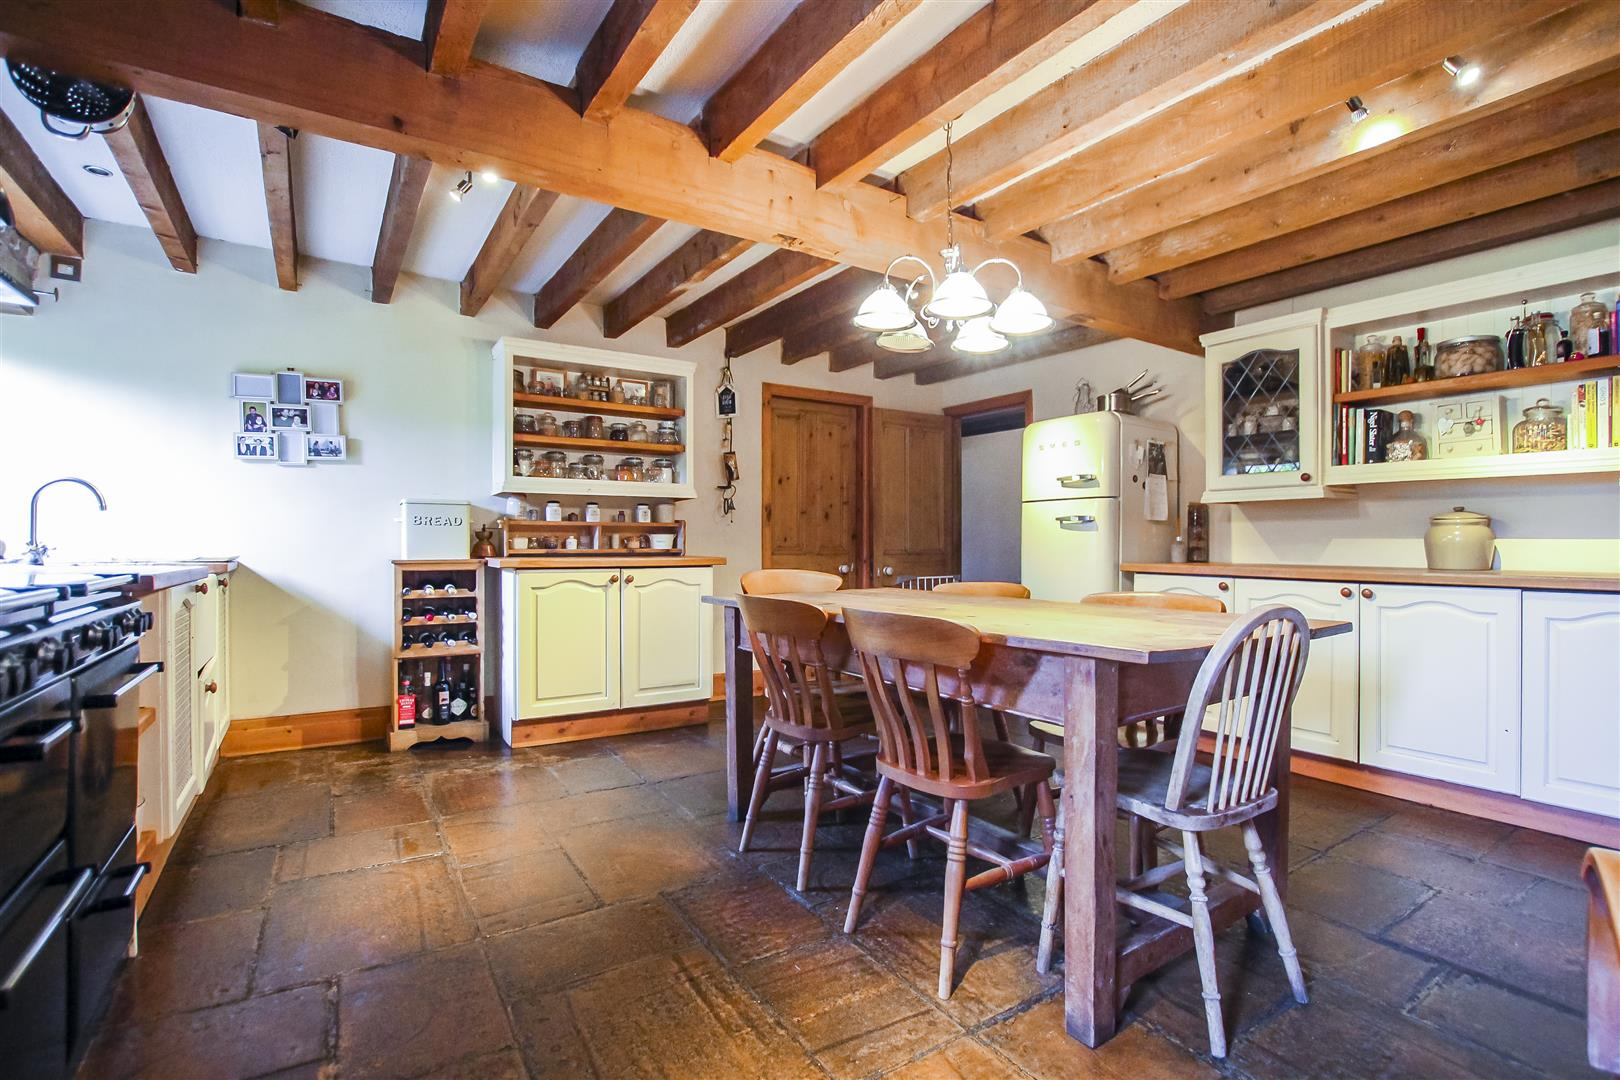 5 Bedroom Barn Conversion For Sale - Image 27